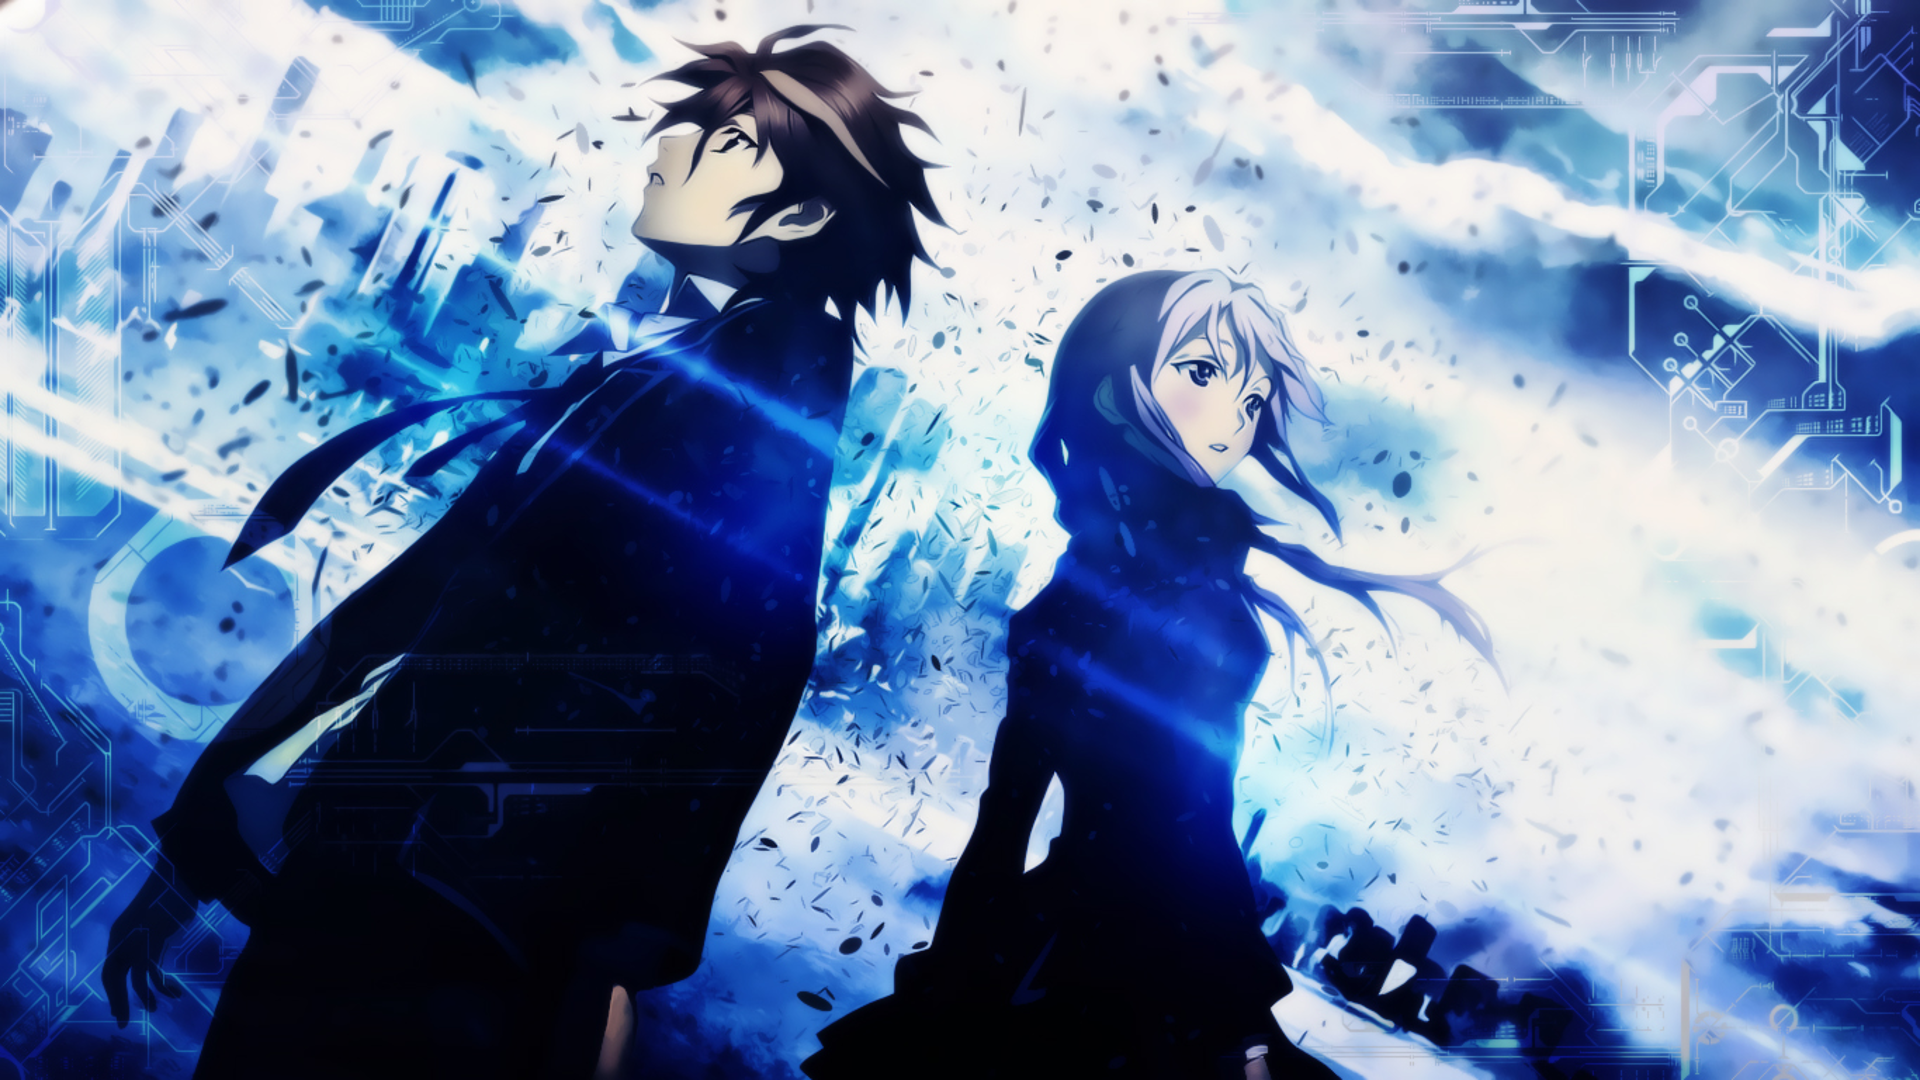 Anime Guilty Crown Shu Ouma Inori Yuzuriha Wallpaper